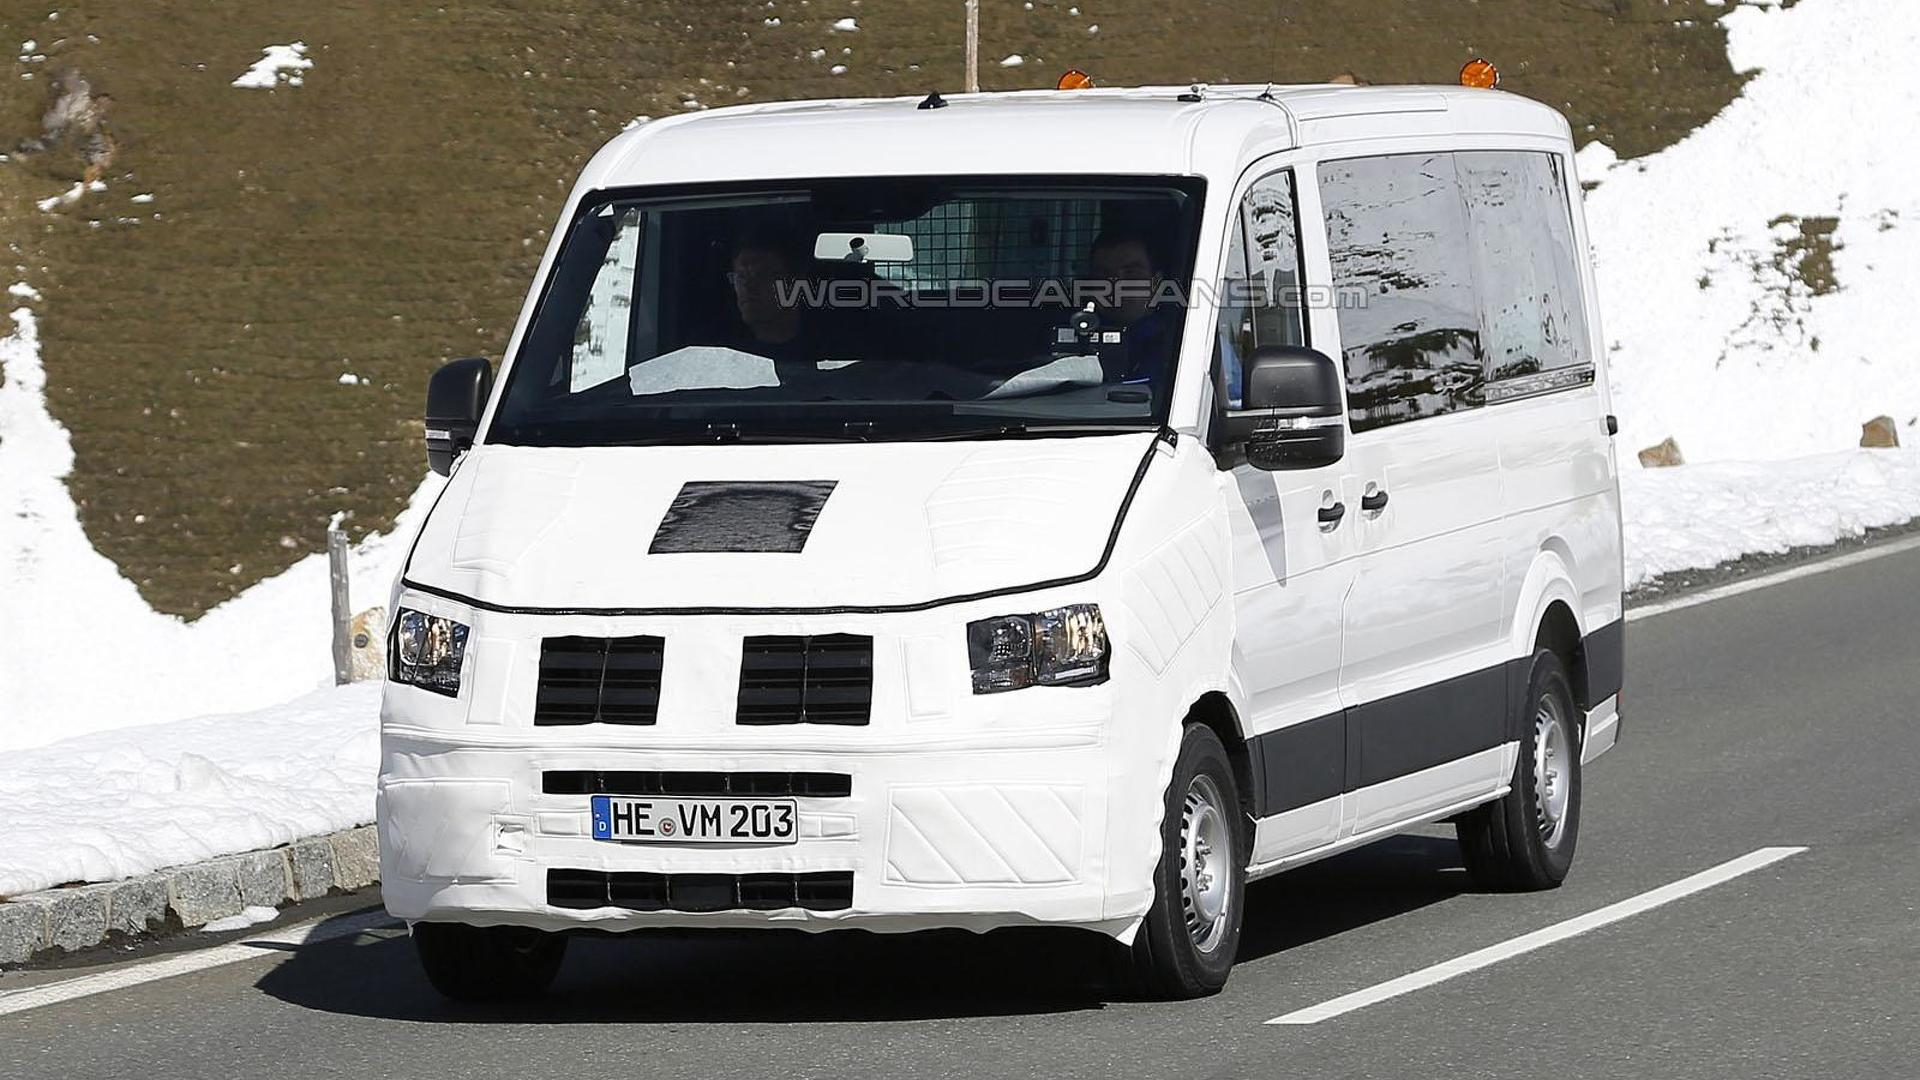 2017 Volkswagen Crafter spied for the first time